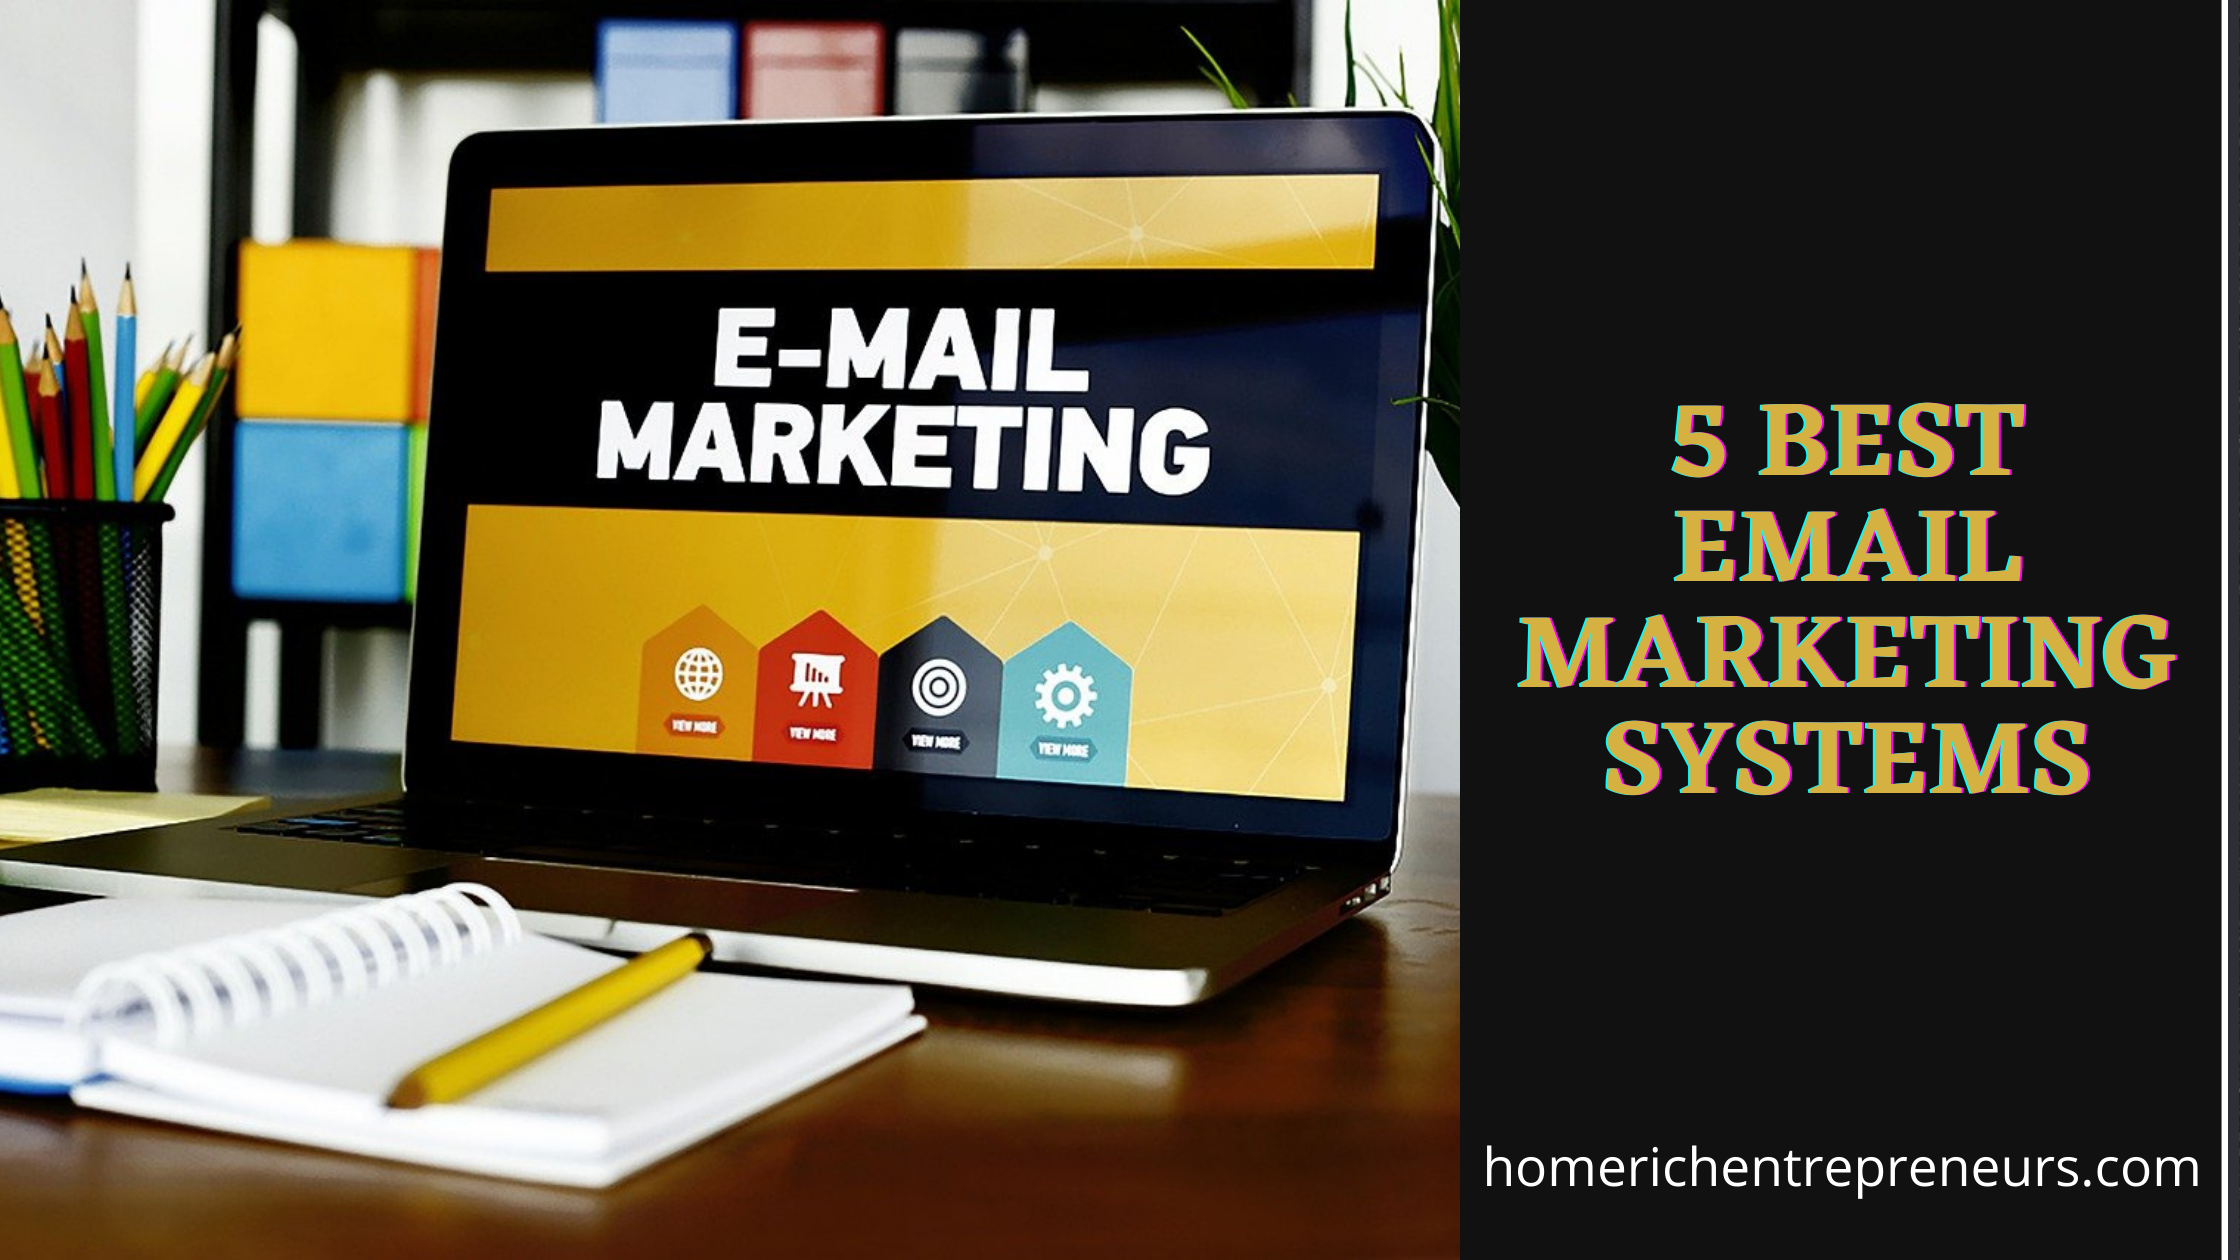 5 Best Email Marketing Systems